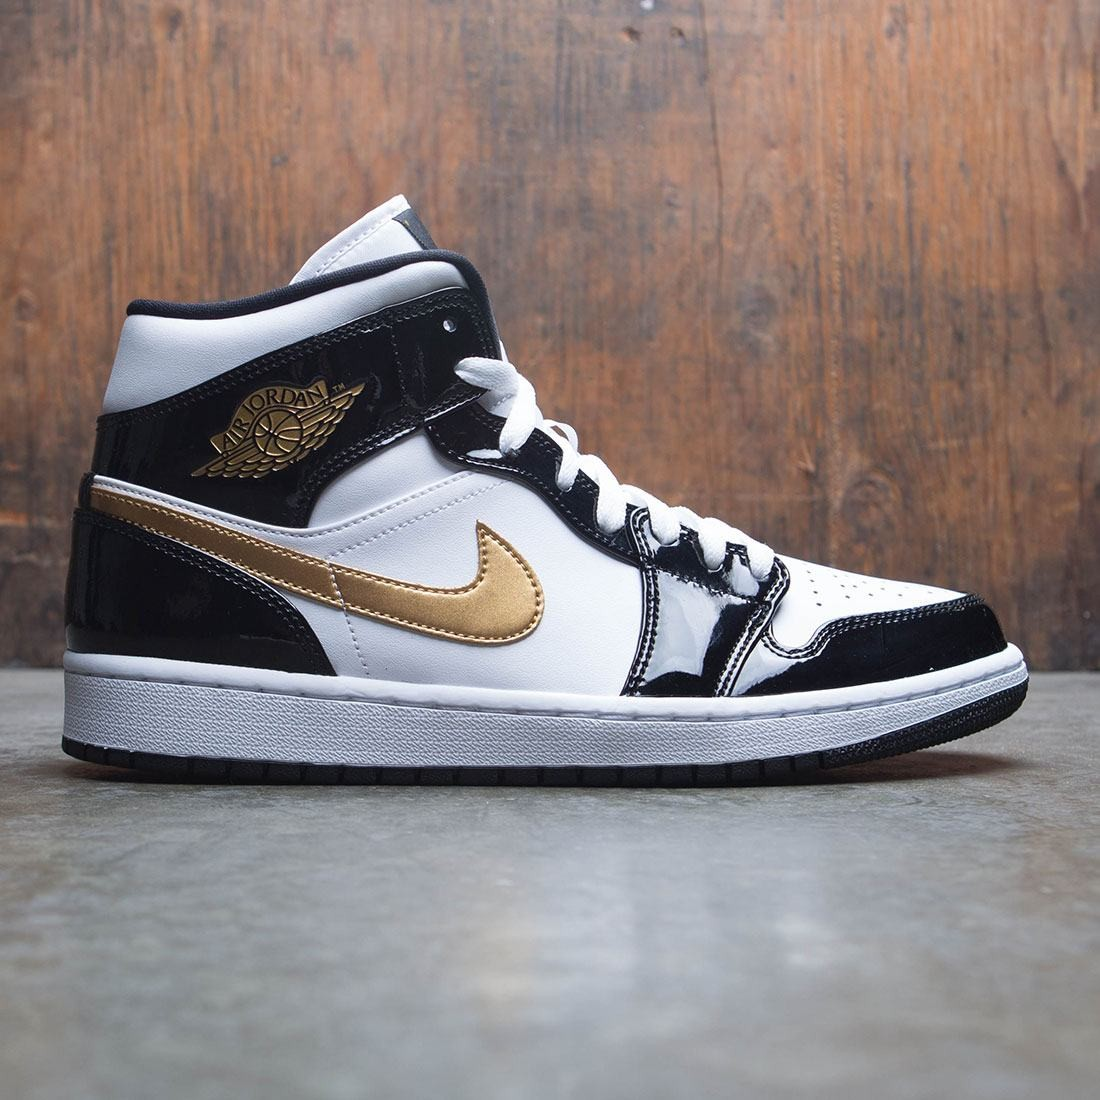 best service 550ca 623ae jordan men air jordan 1 mid se black metallic gold white